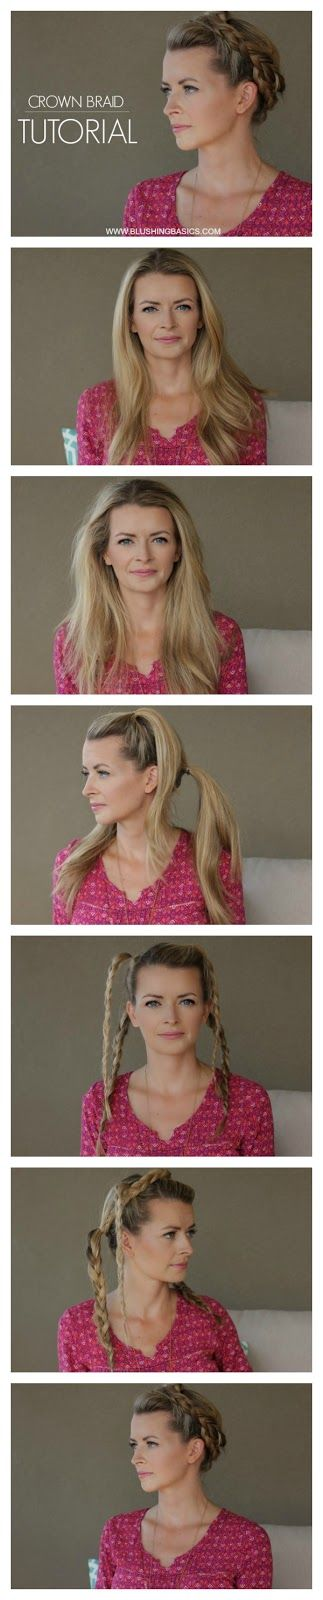 Crown Braid Tutorial - the easiest, fool proof, can't go wrong even if you tried, tutorial via #blushingbasics